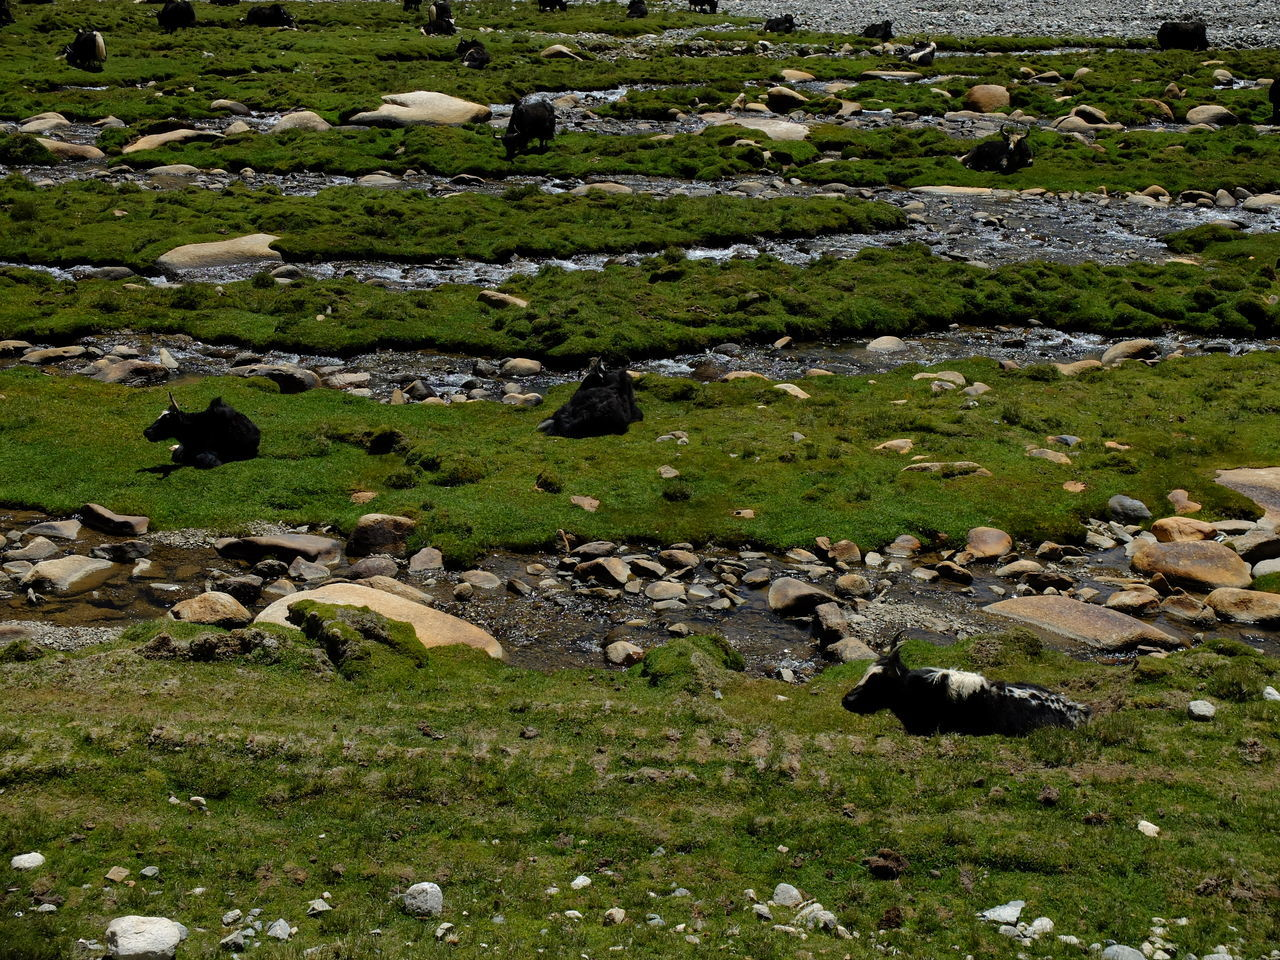 Agriculture Animal Themes Beauty In Nature Day Field Flock Of Sheep Grass Grazing Green Color Jammu And Kashmir Large Group Of Animals Leh Ladakh Mammal Nature No People Outdoors Rural Scene Scenics Sheep